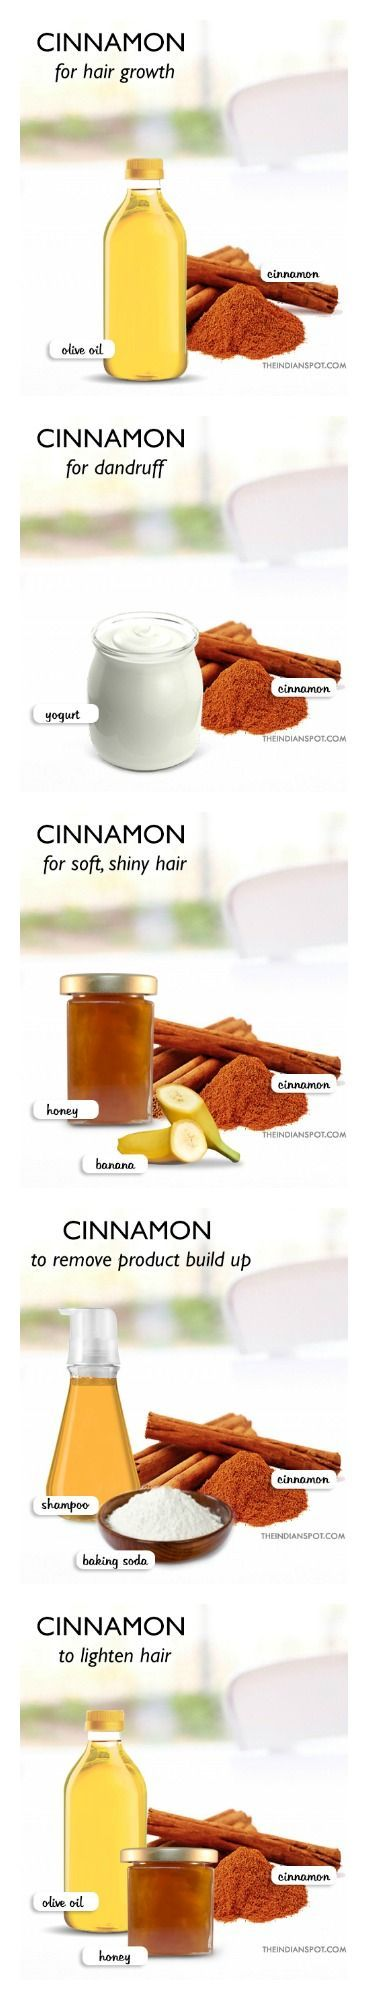 Cinnamon for hair growth.